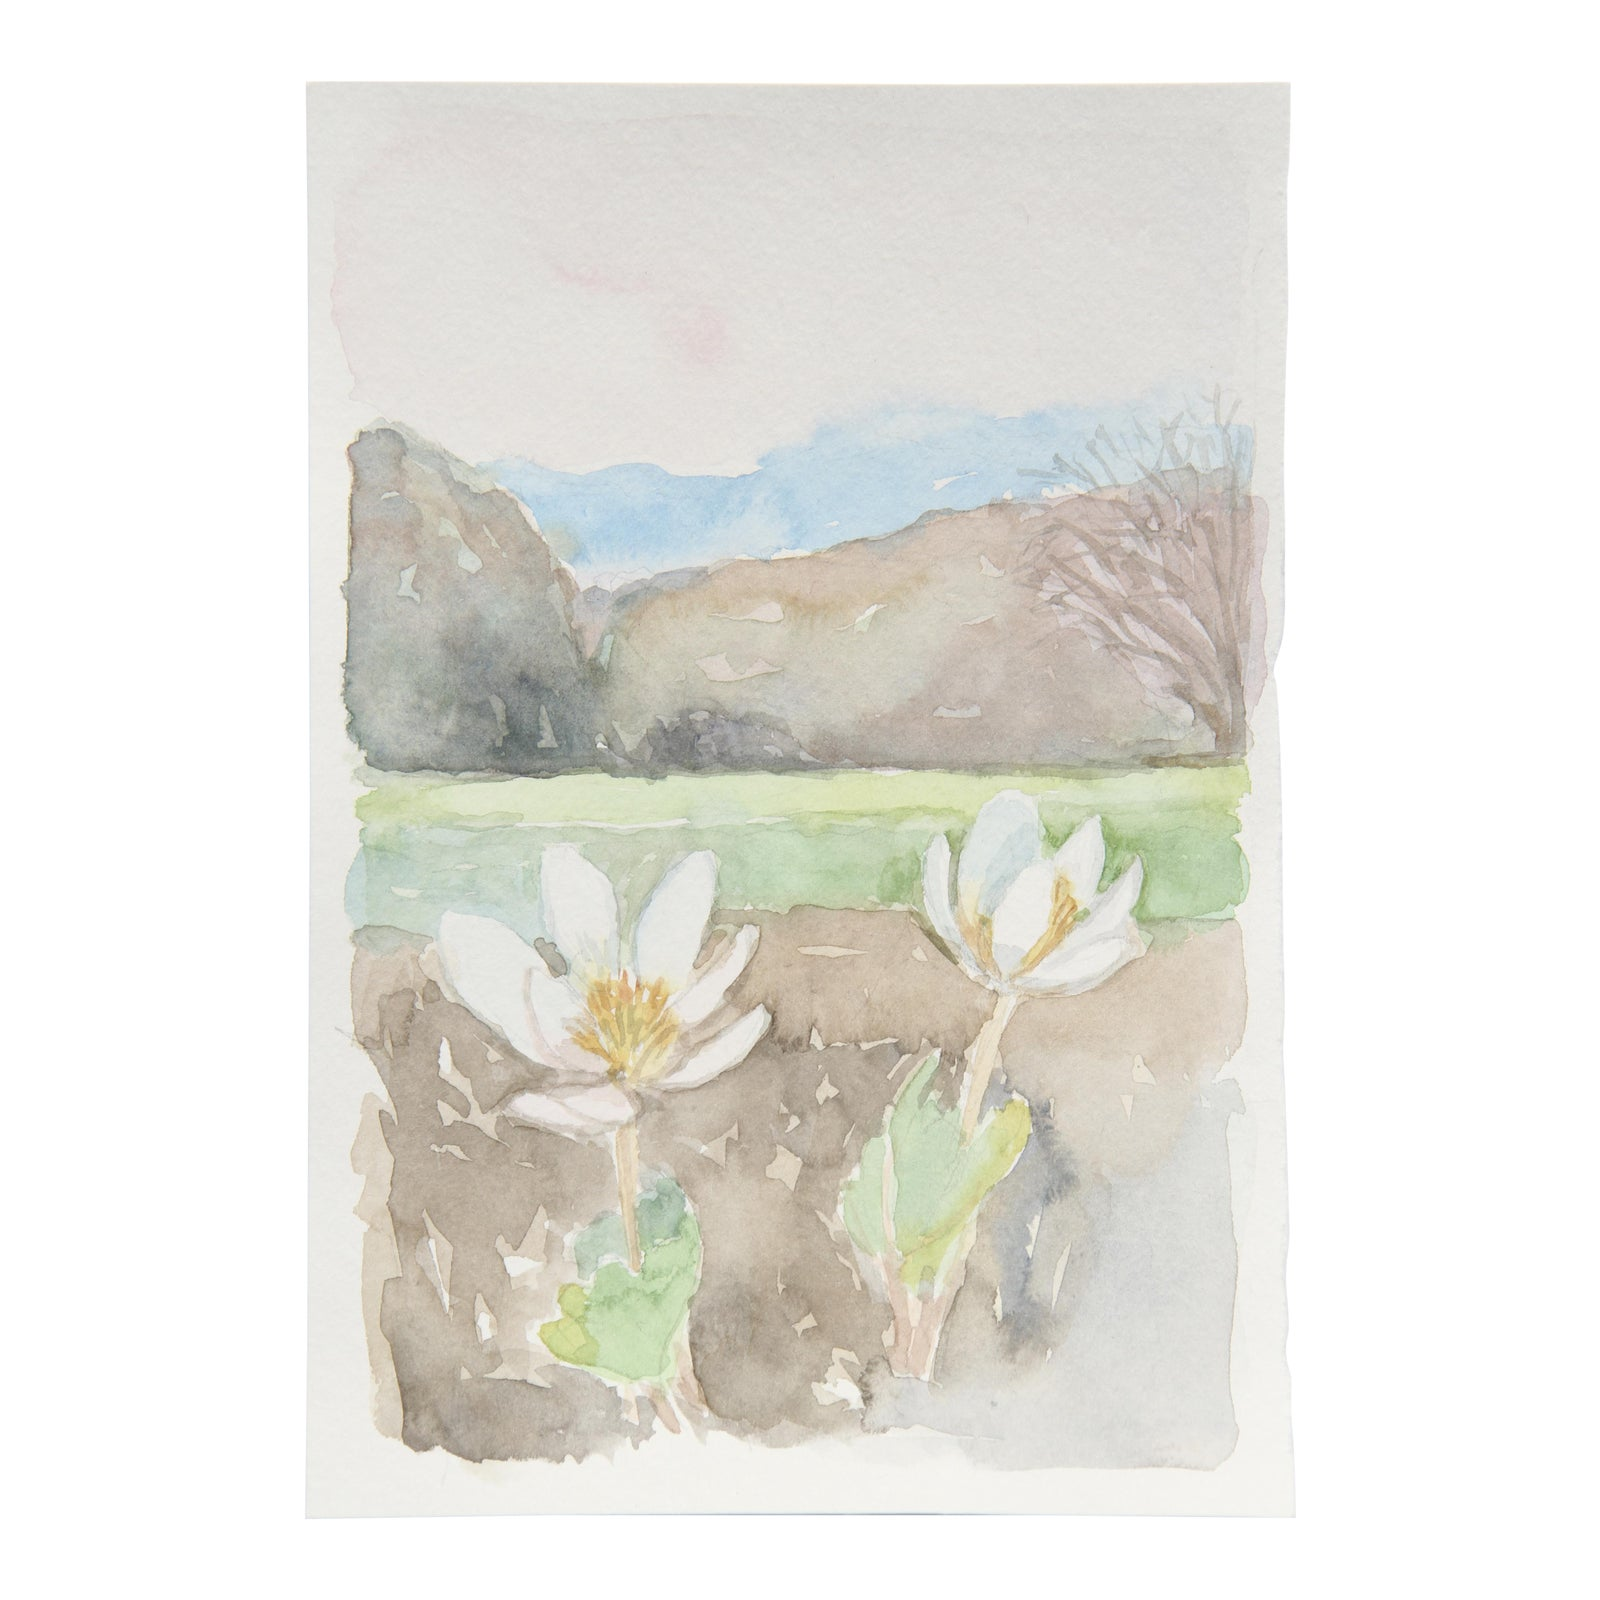 Watercolor Painting Of Landscape With Hills And White Flowers Chairish